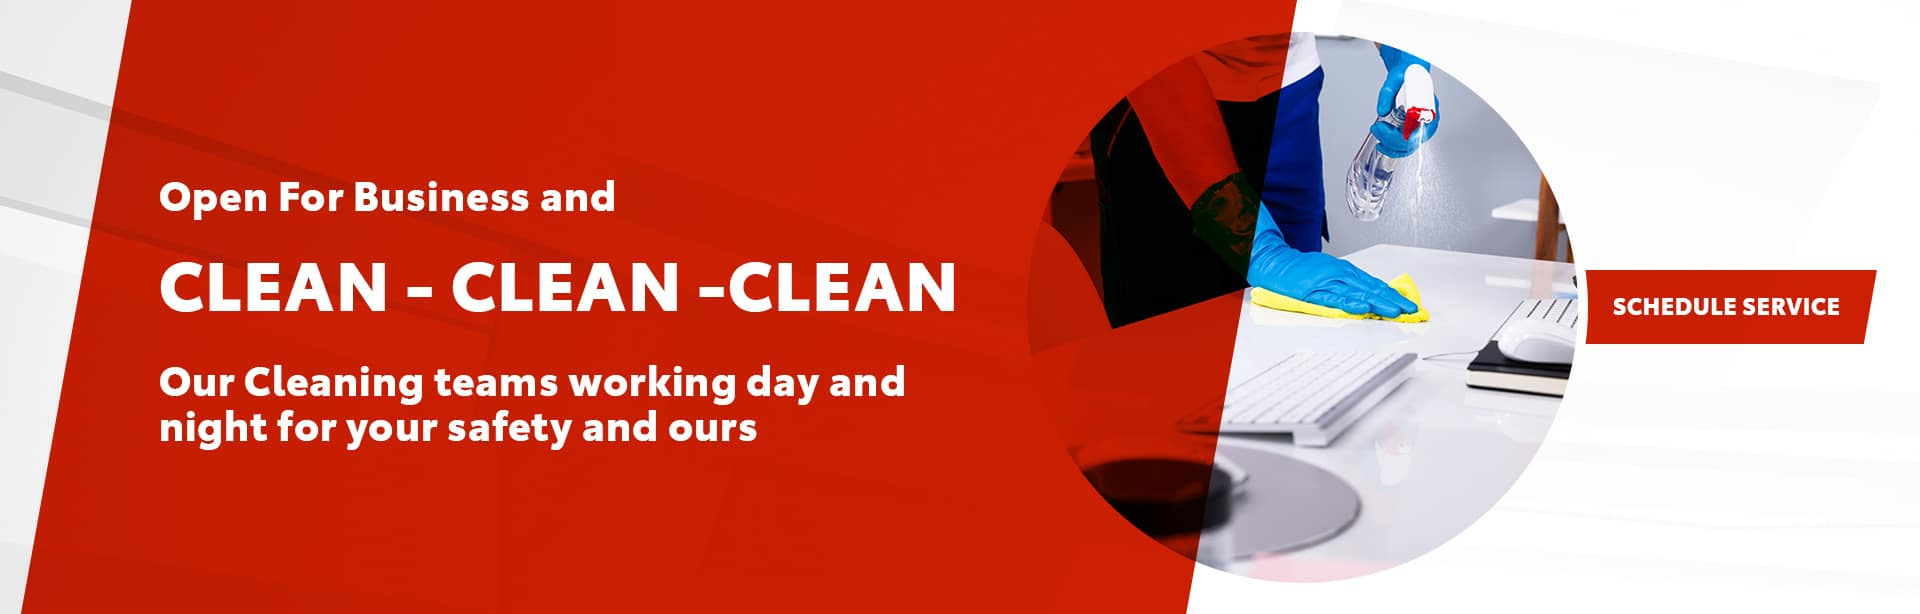 Open For Business And Clean - Clean - Clean | Our Cleaning Teams Working Day And Night For Your Safety And Ours